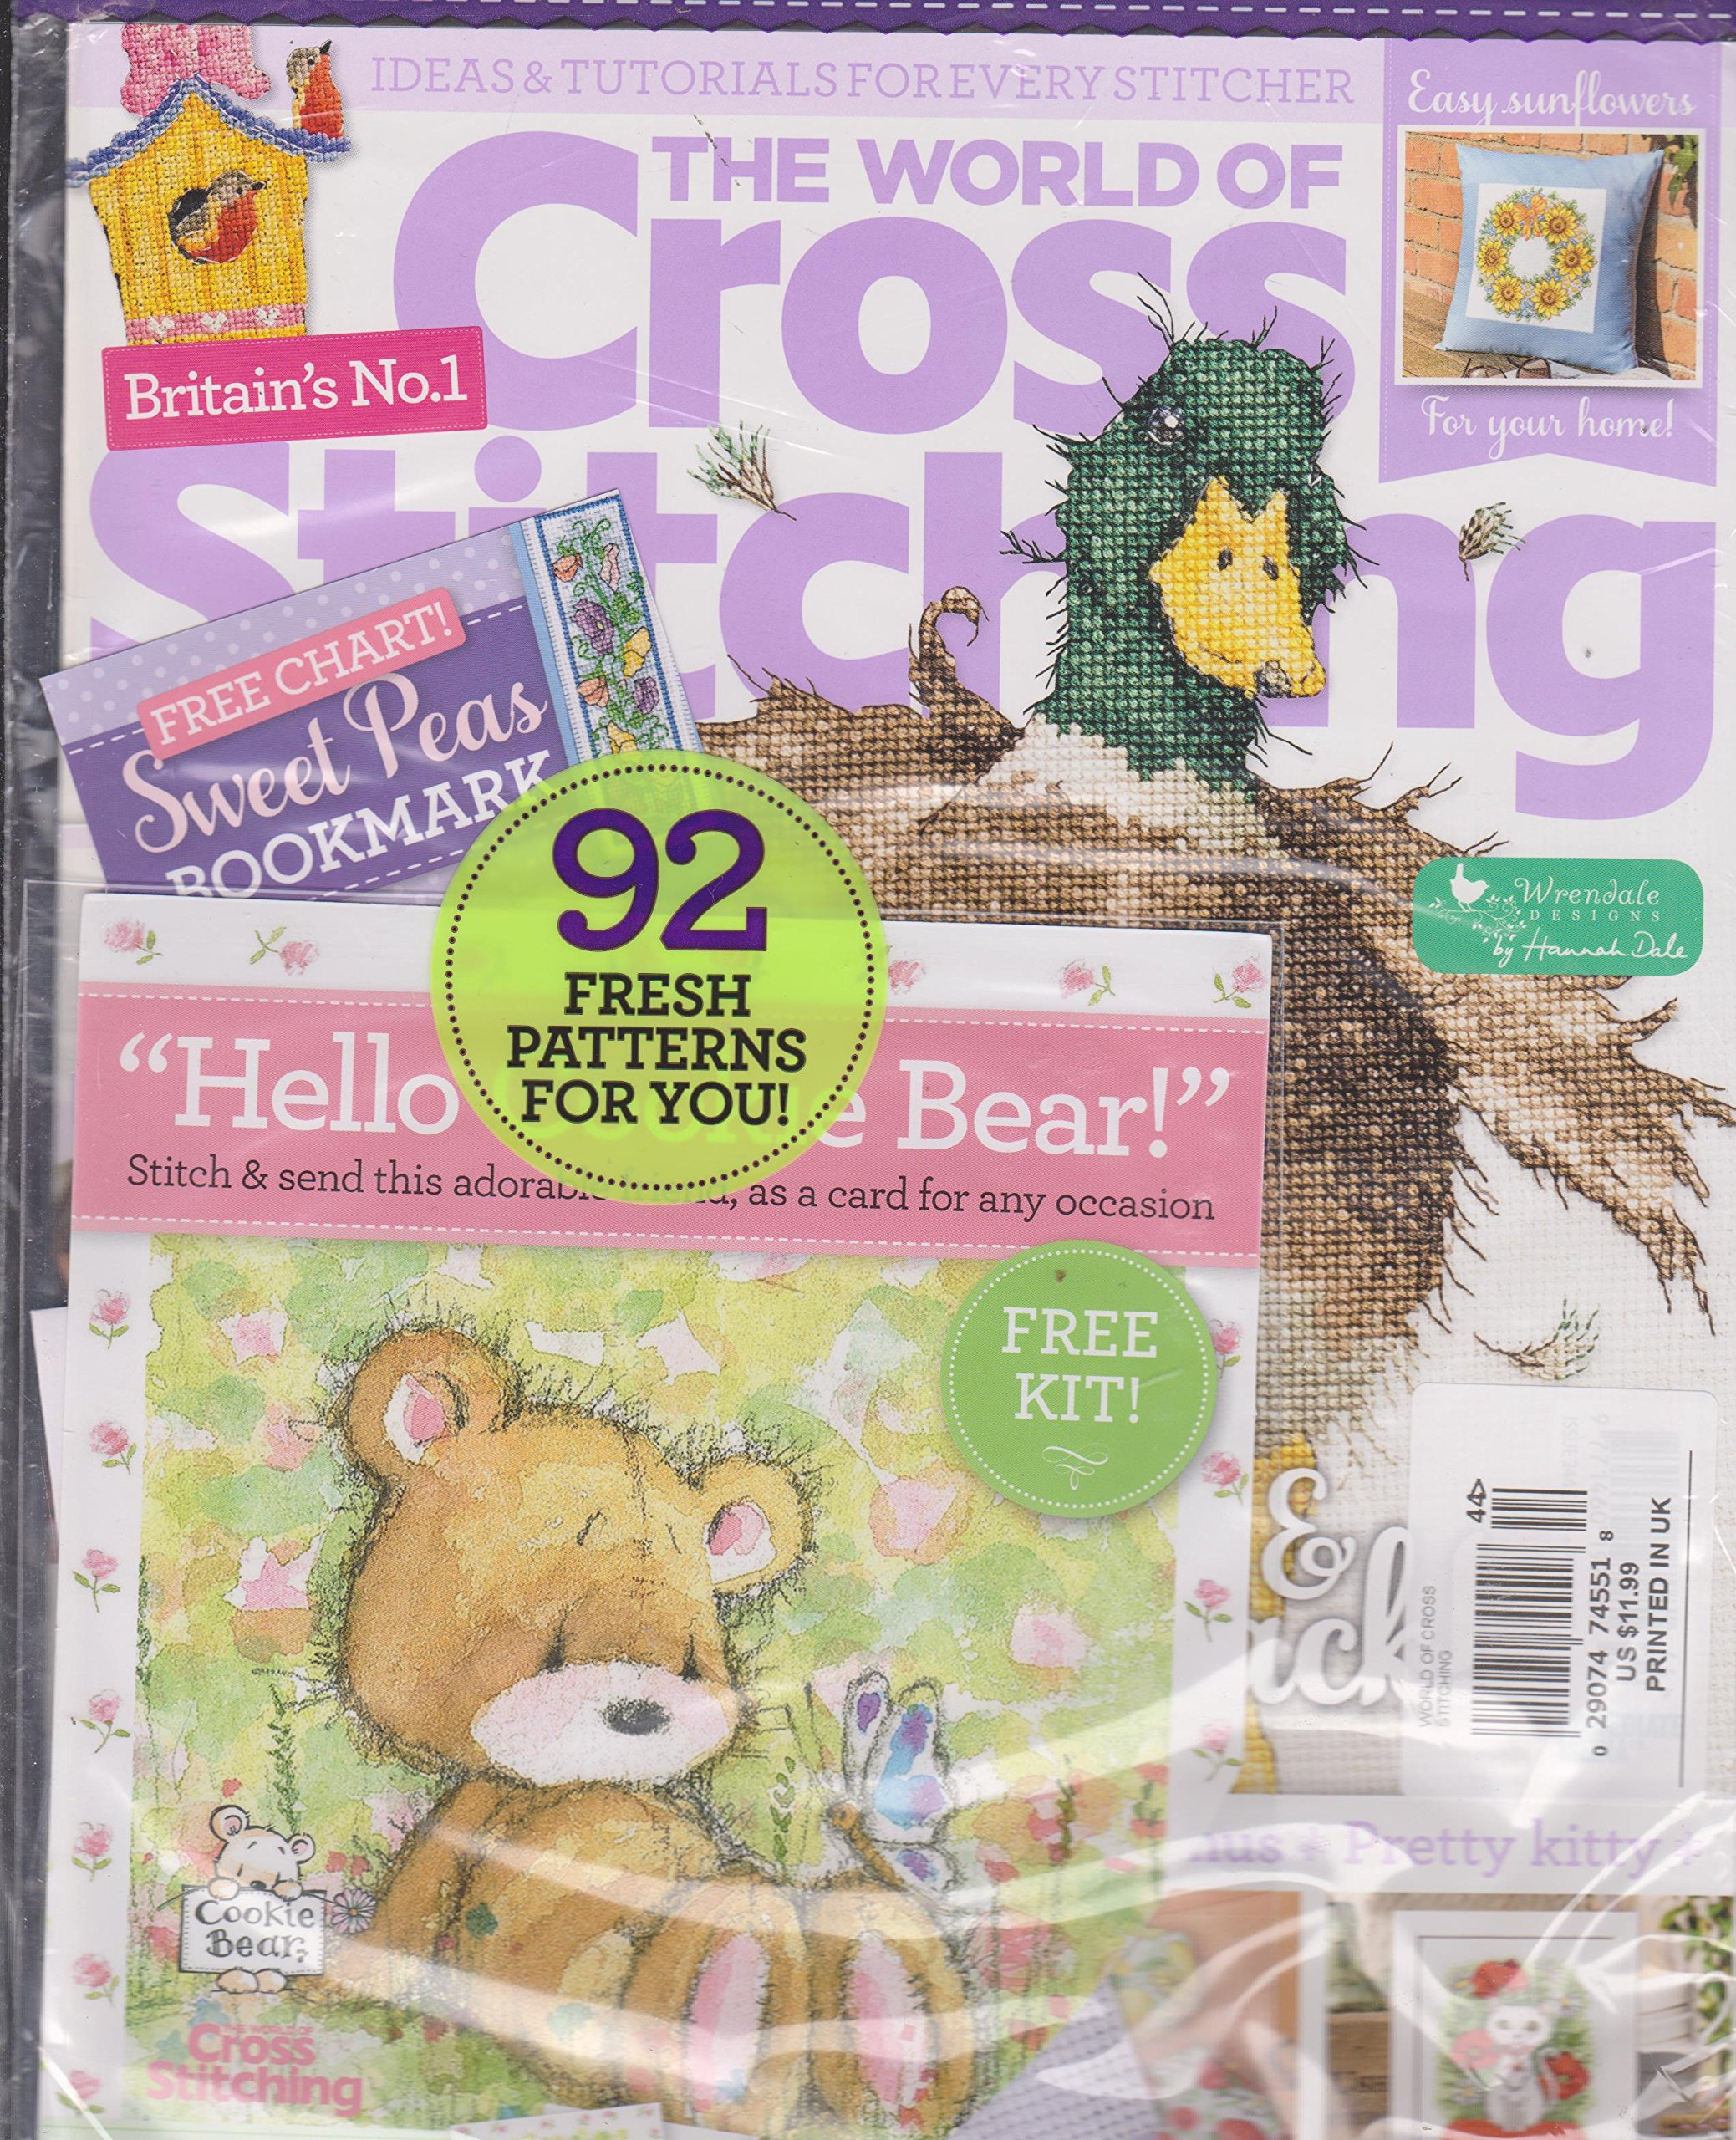 Download The World of Cross Stitching Magazine Issue 244 PDF